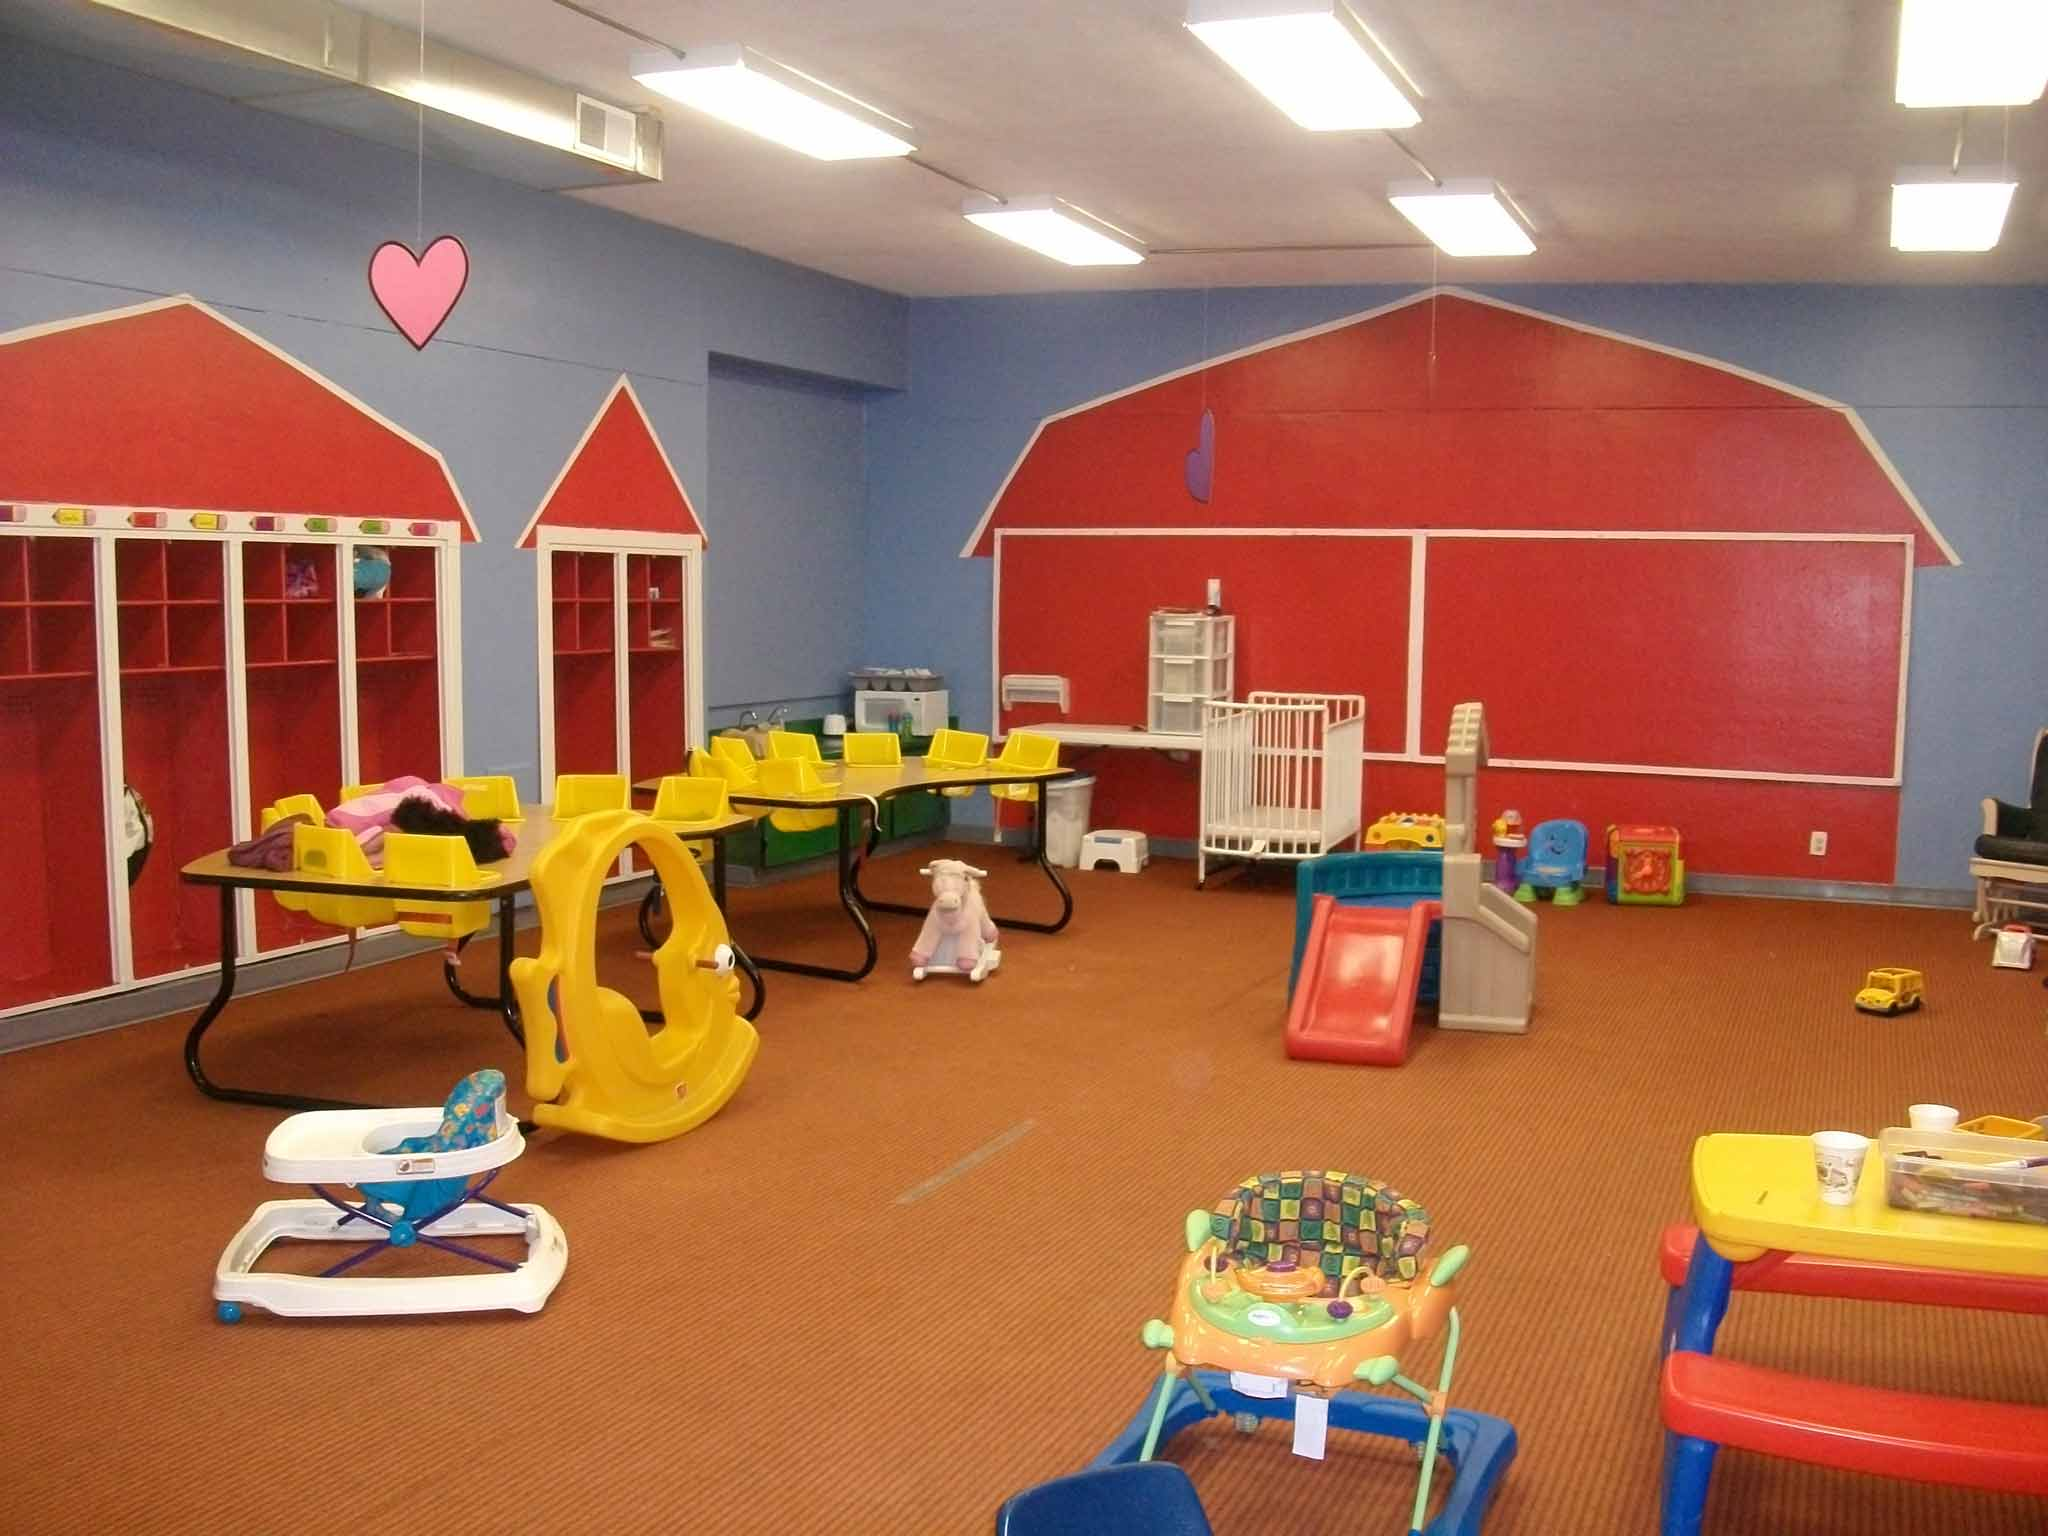 What Supplies Are Needed To Open A Daycare Center Or Preschool Facility The Preschool Mentor